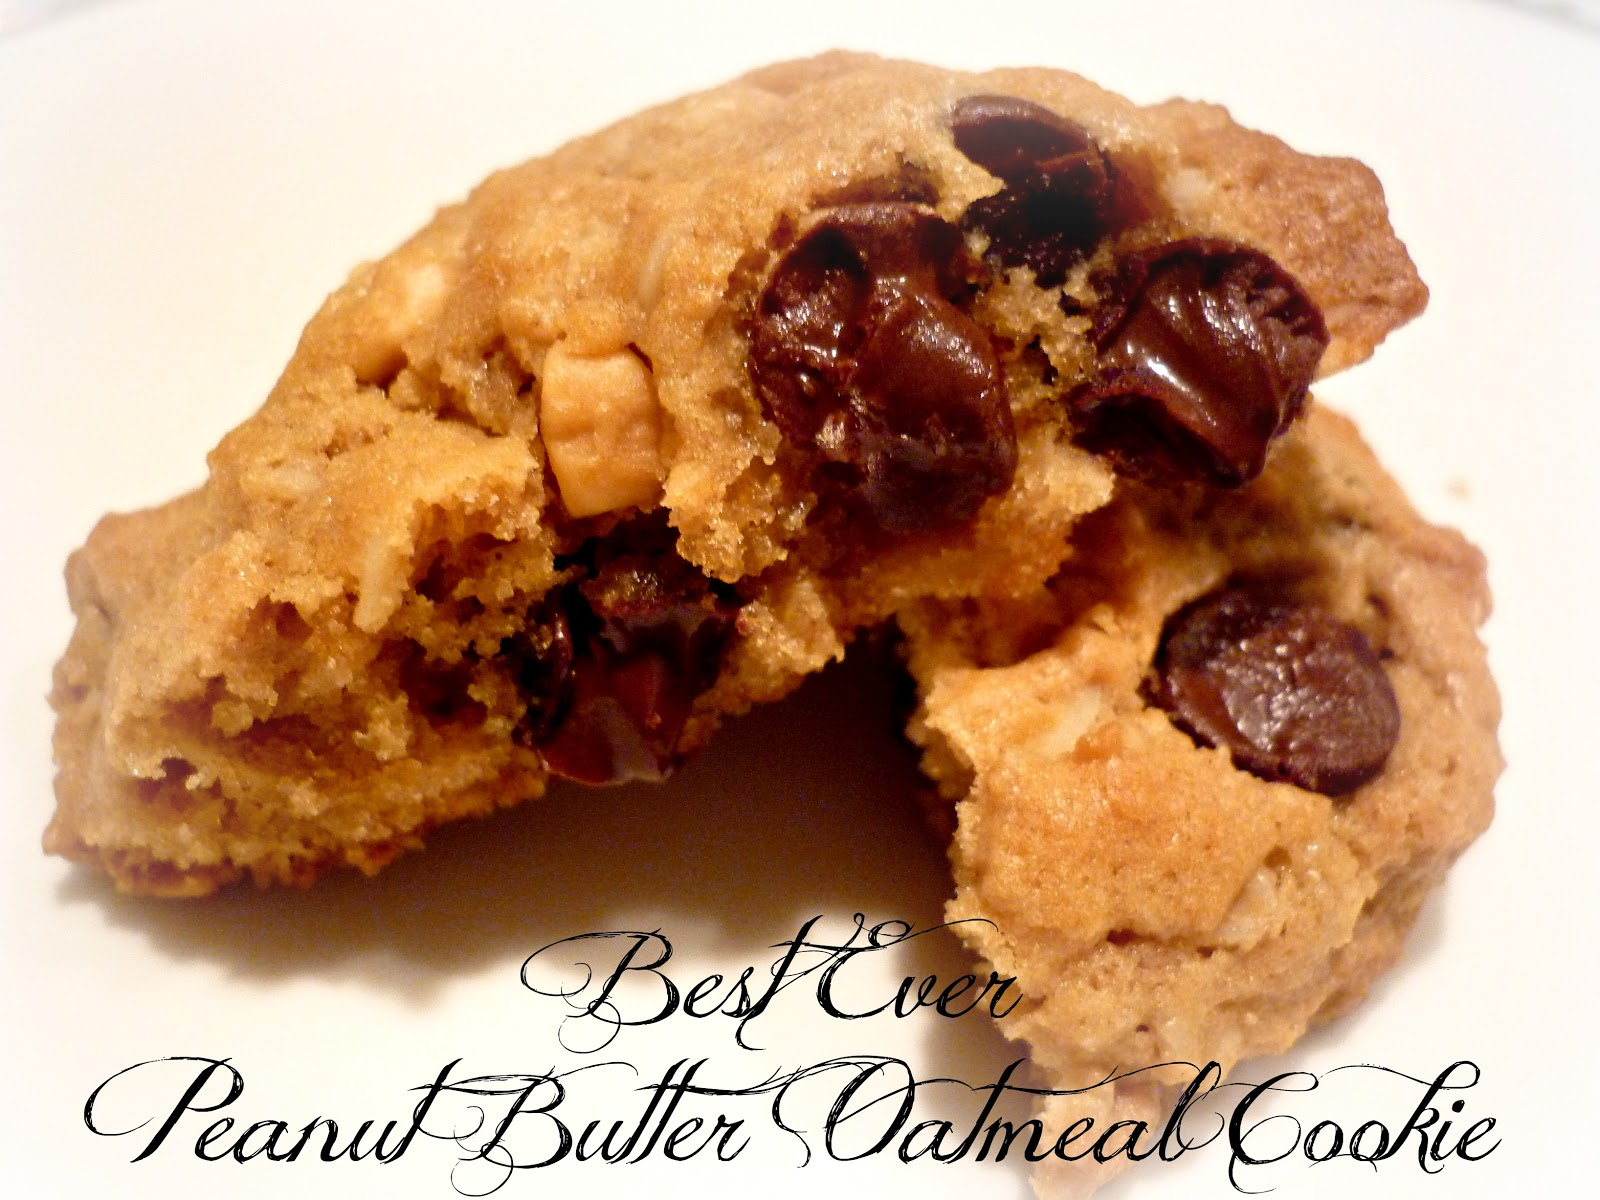 ... Gift Basket with Best Ever Peanut Butter Oatmeal Cookie Recipe